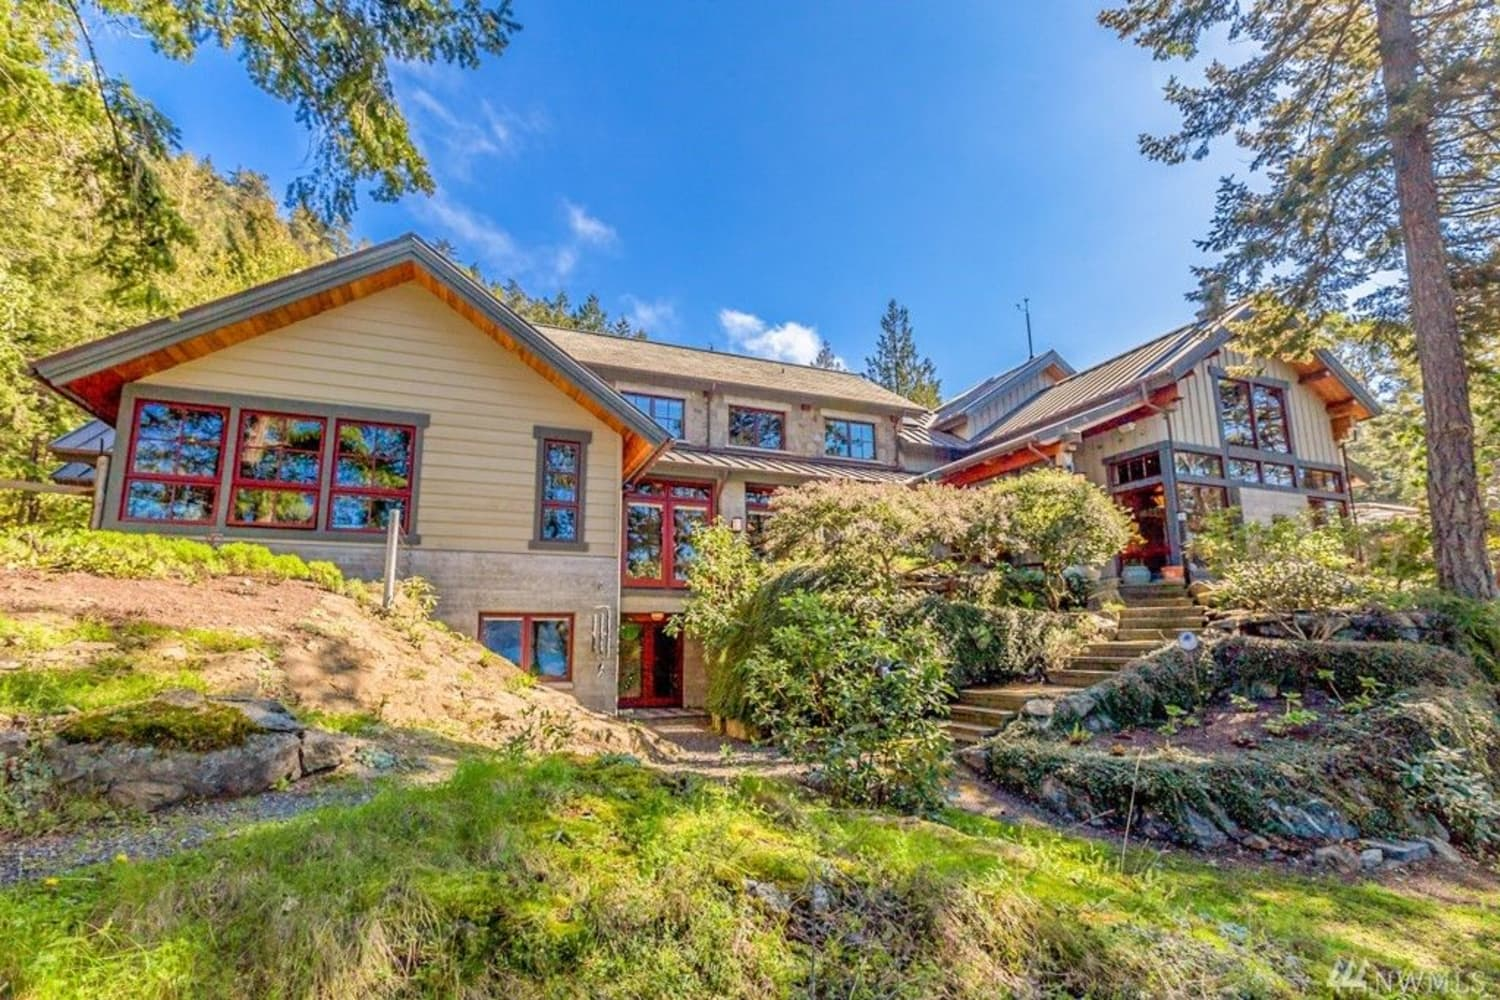 Oprah Buys 43-Acre Pacific Northwest Island Estate for $8.28M